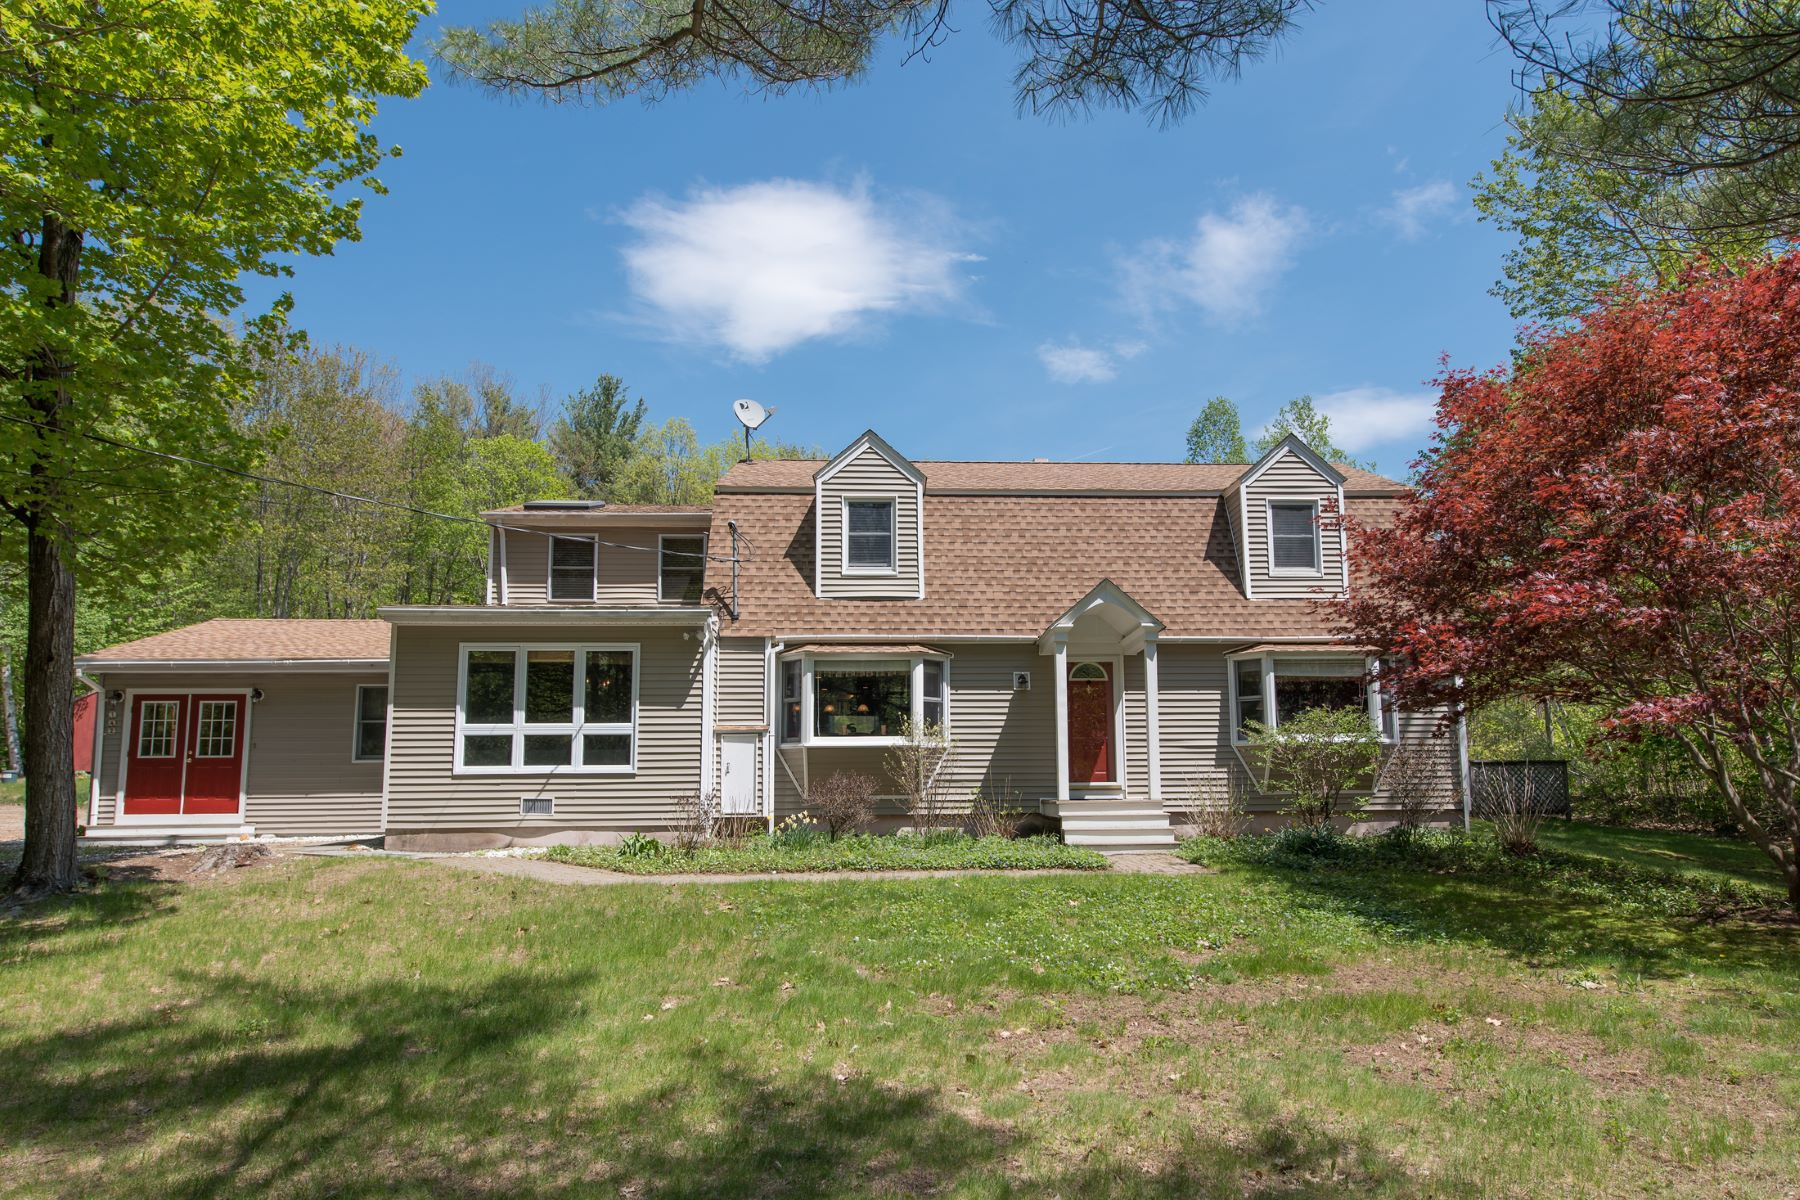 Single Family Home for Sale at 142 Ossipee Mountain Road, Moultonborough 142 Ossipee Mountain Rd Moultonborough, New Hampshire, 03254 United States